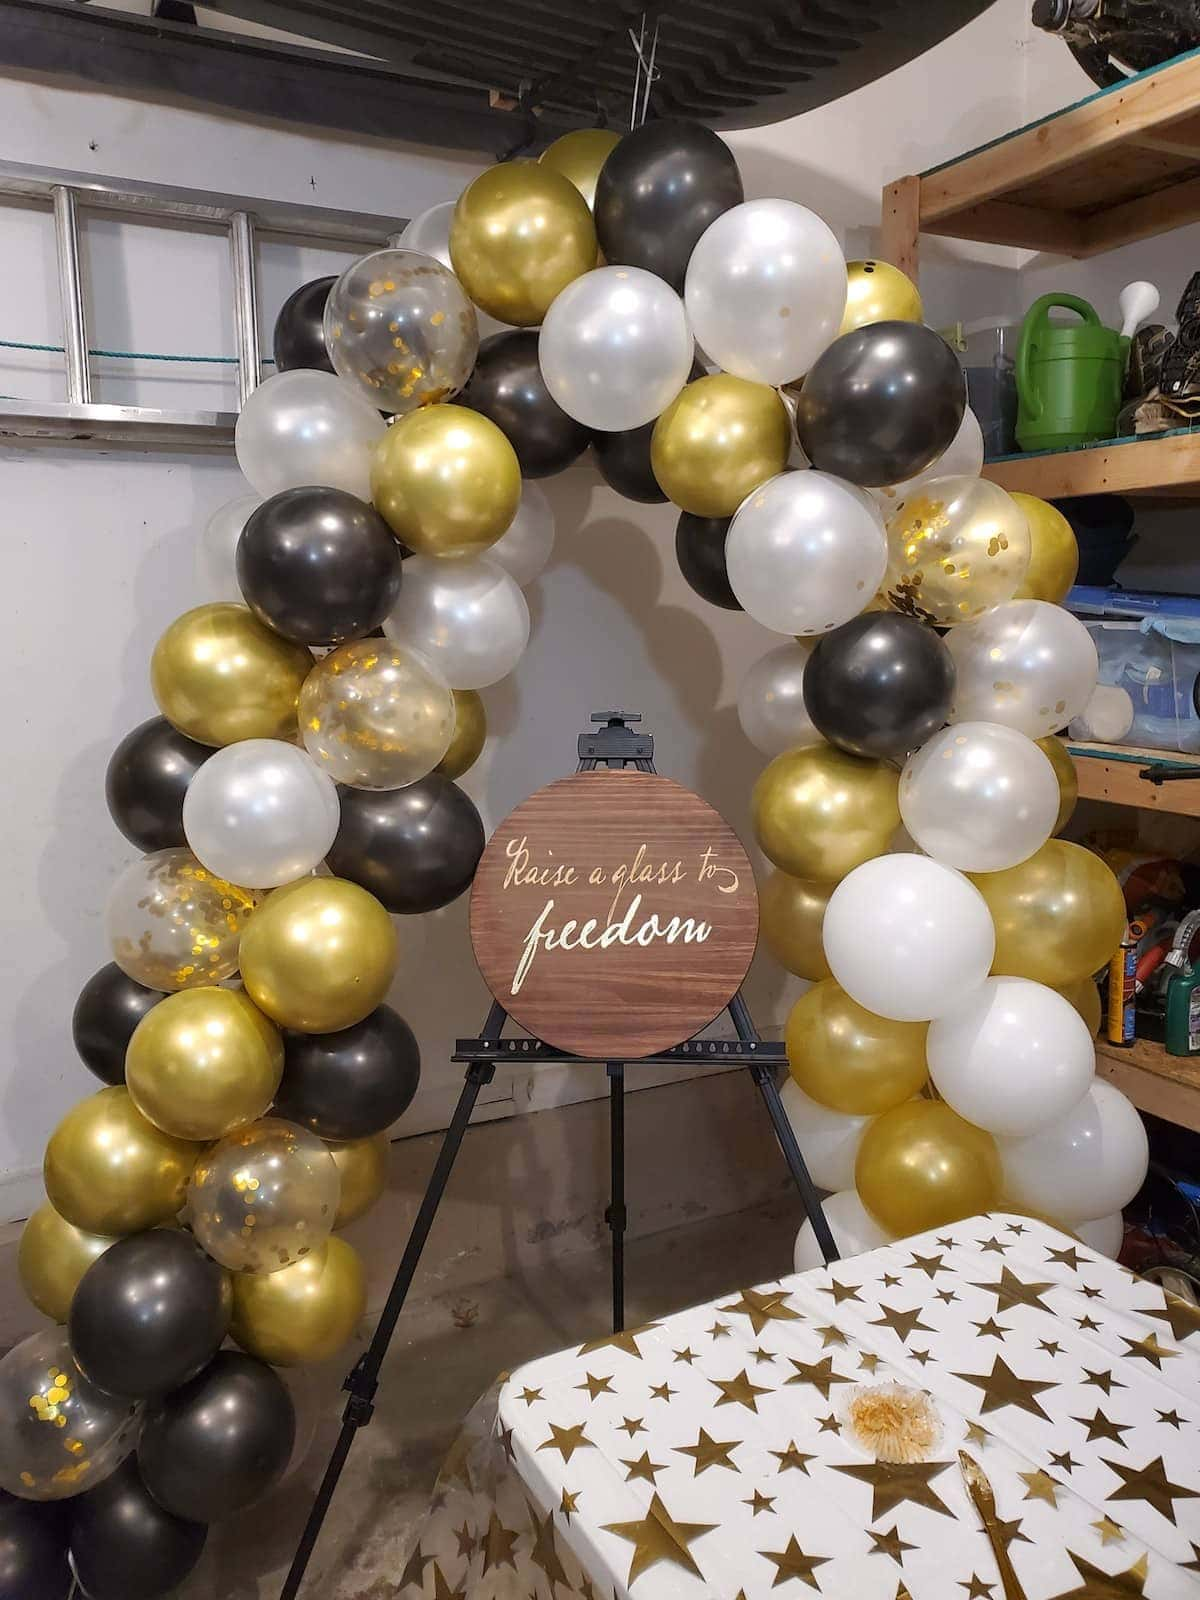 Balloon arch with wood sign RAISE A GLASS TO FREEDOM